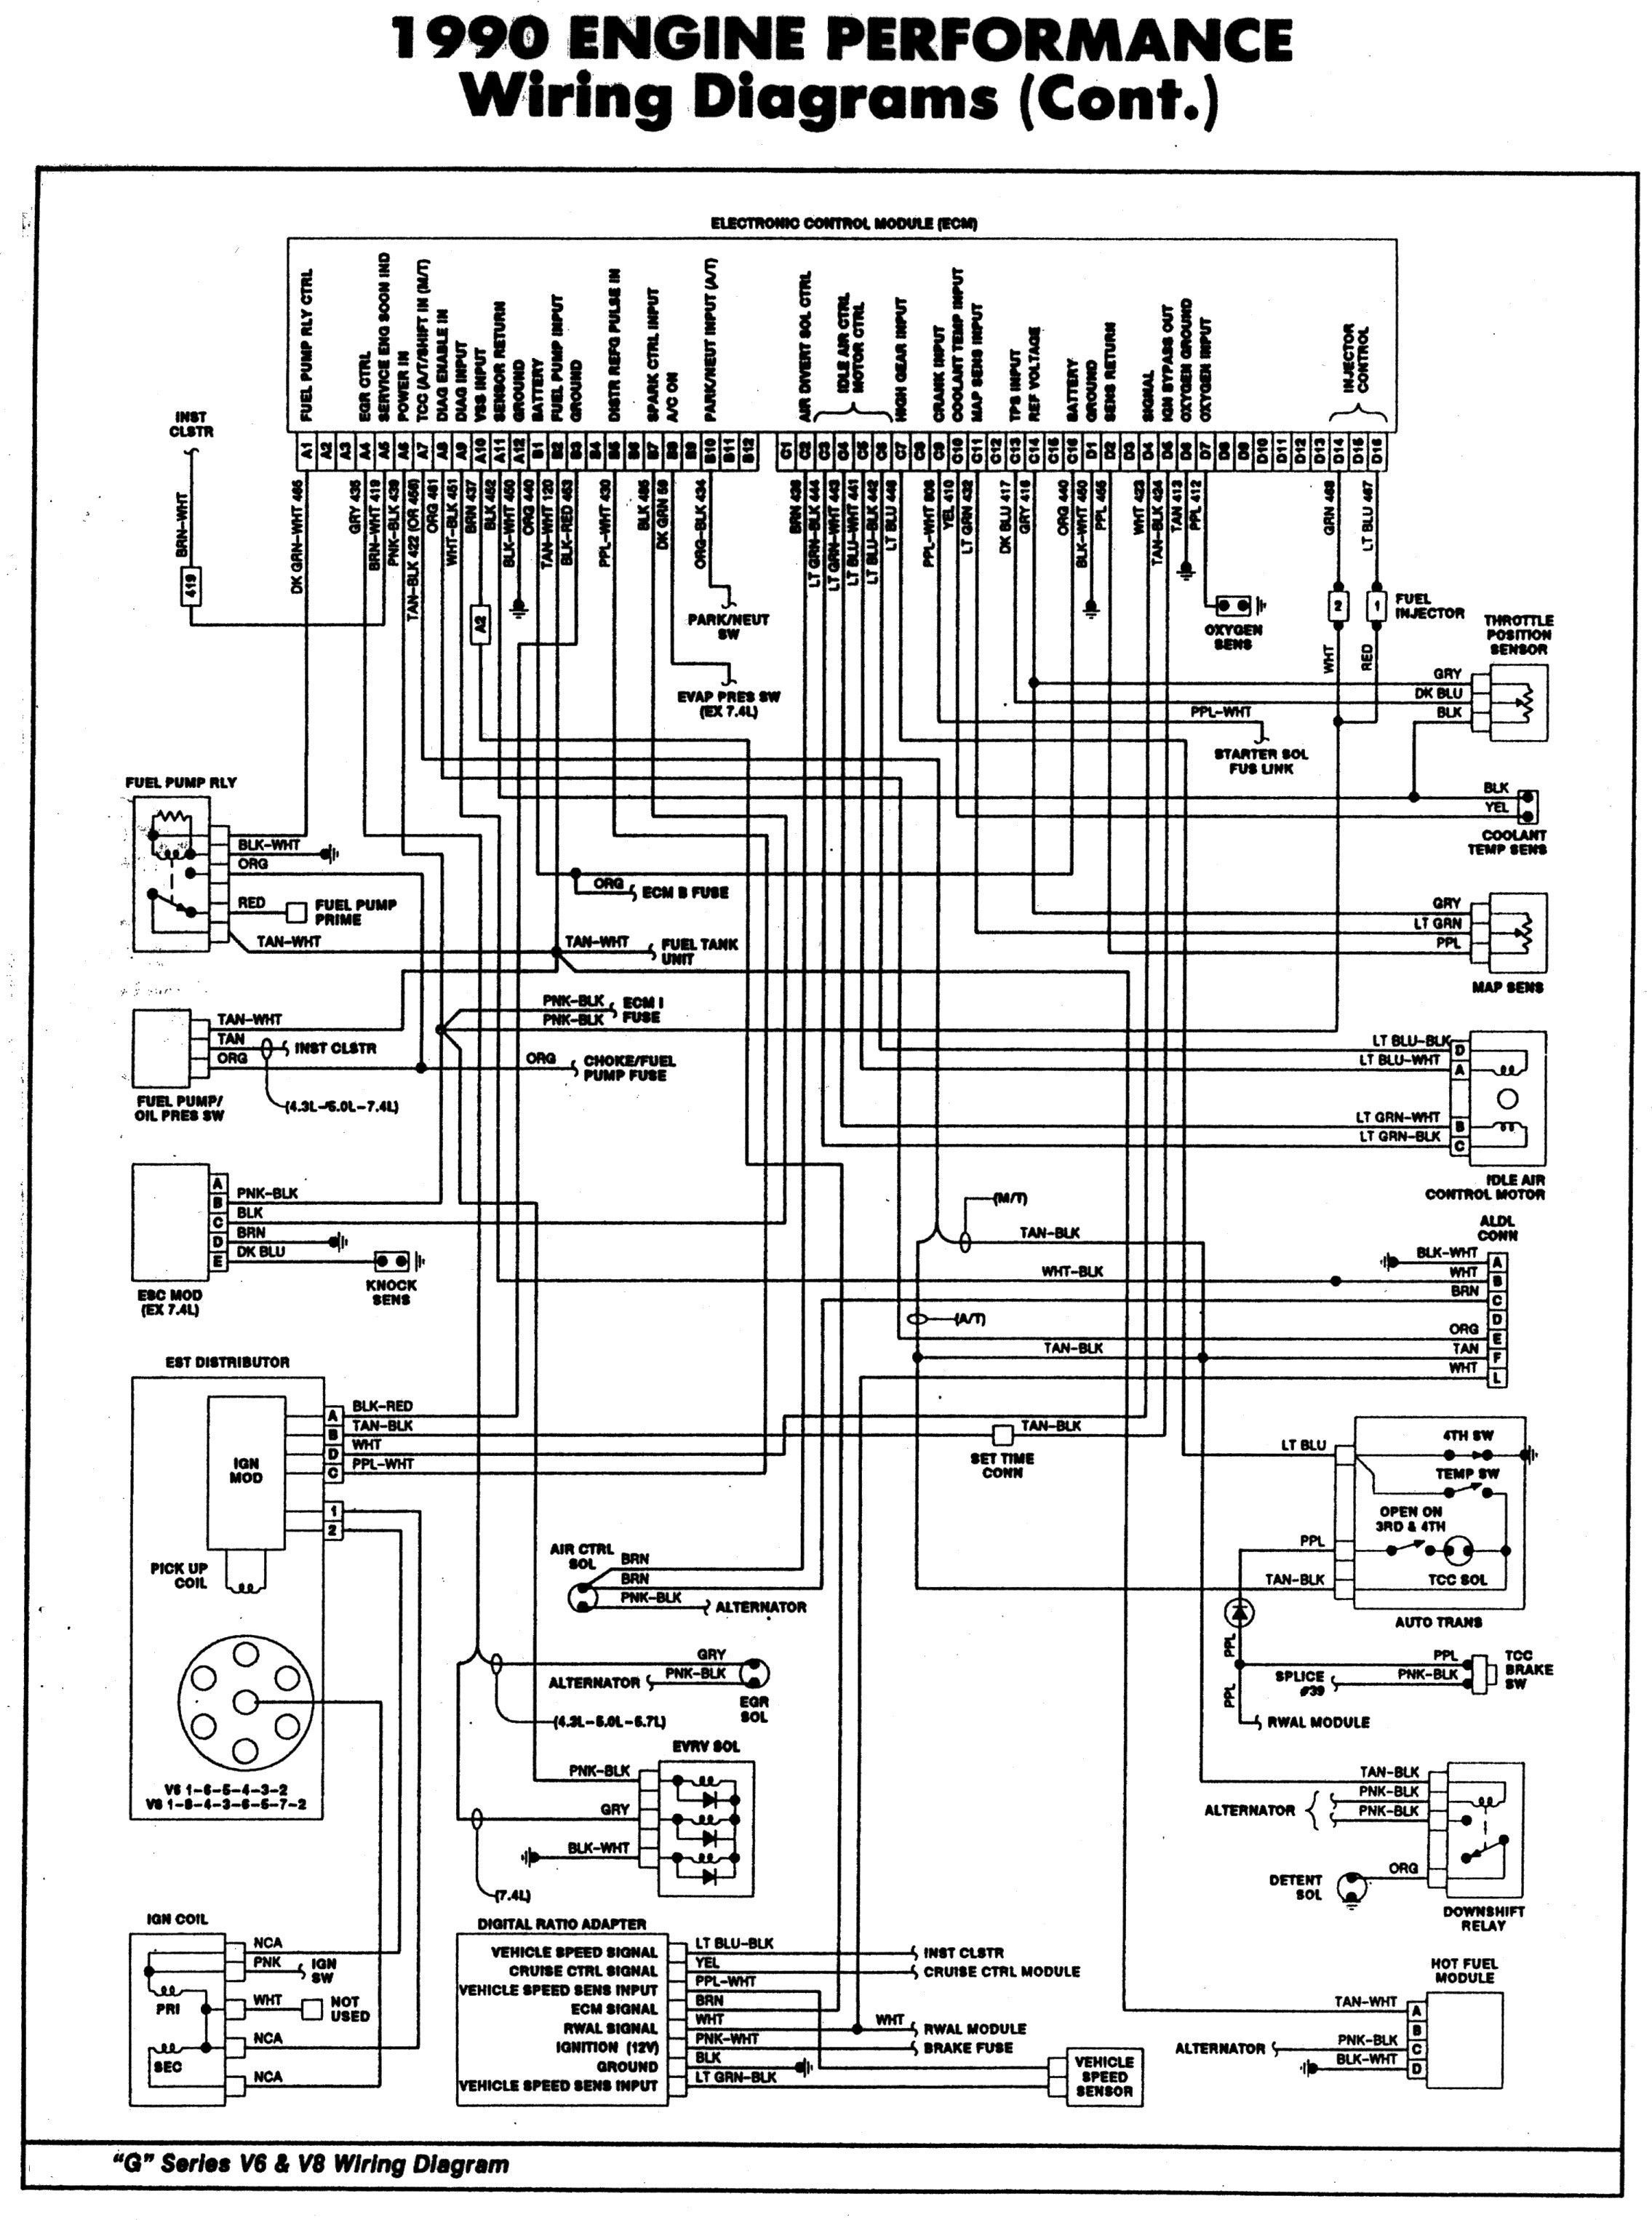 22 Stunning Free Vehicle Wiring Diagrams Https Bacamajalah Com 22 Stunning Free Vehicle Wiring Diagram Electrical Wiring Diagram Chevy Trucks Chevy Pickups